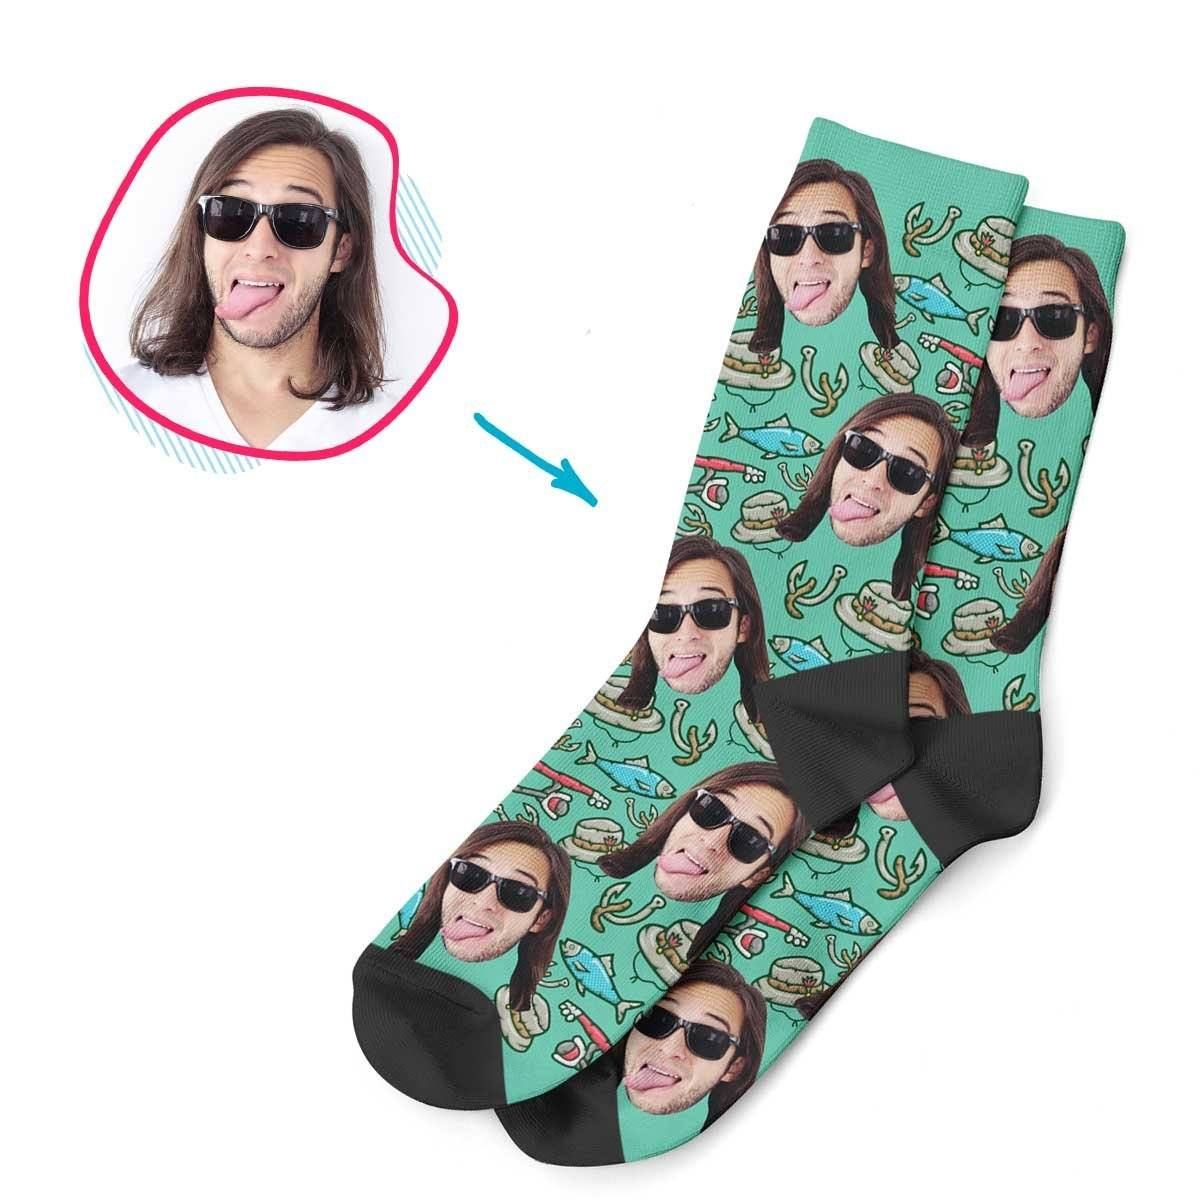 Mint Fishing personalized socks with photo of face printed on them